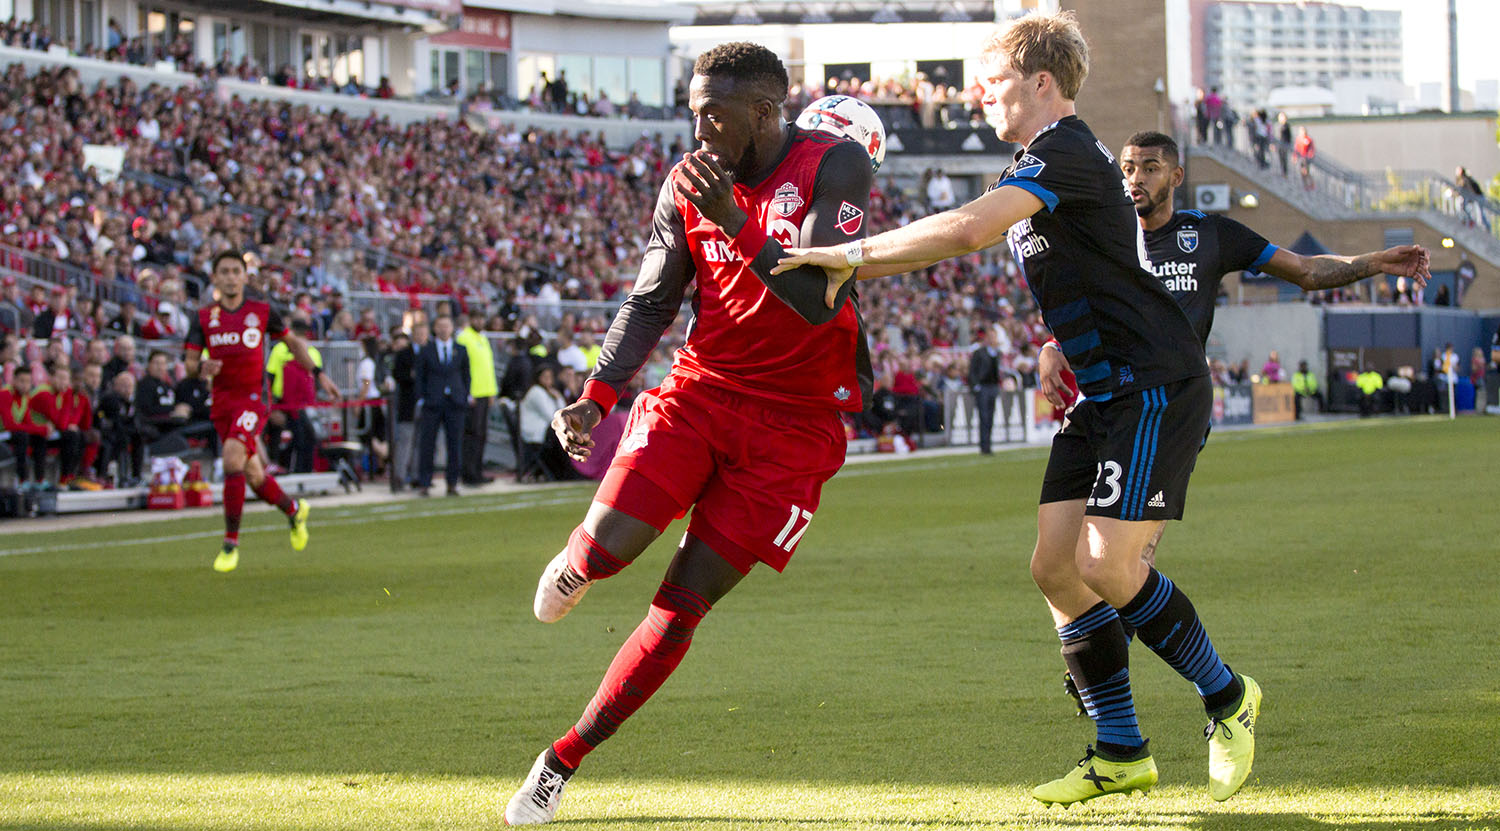 Jozy Altidore flicks the ball behind is back to get an advantage on a defender at BMO Field of a MLS Regular Season match. Image by Dennis Marciniak of denMAR Media.